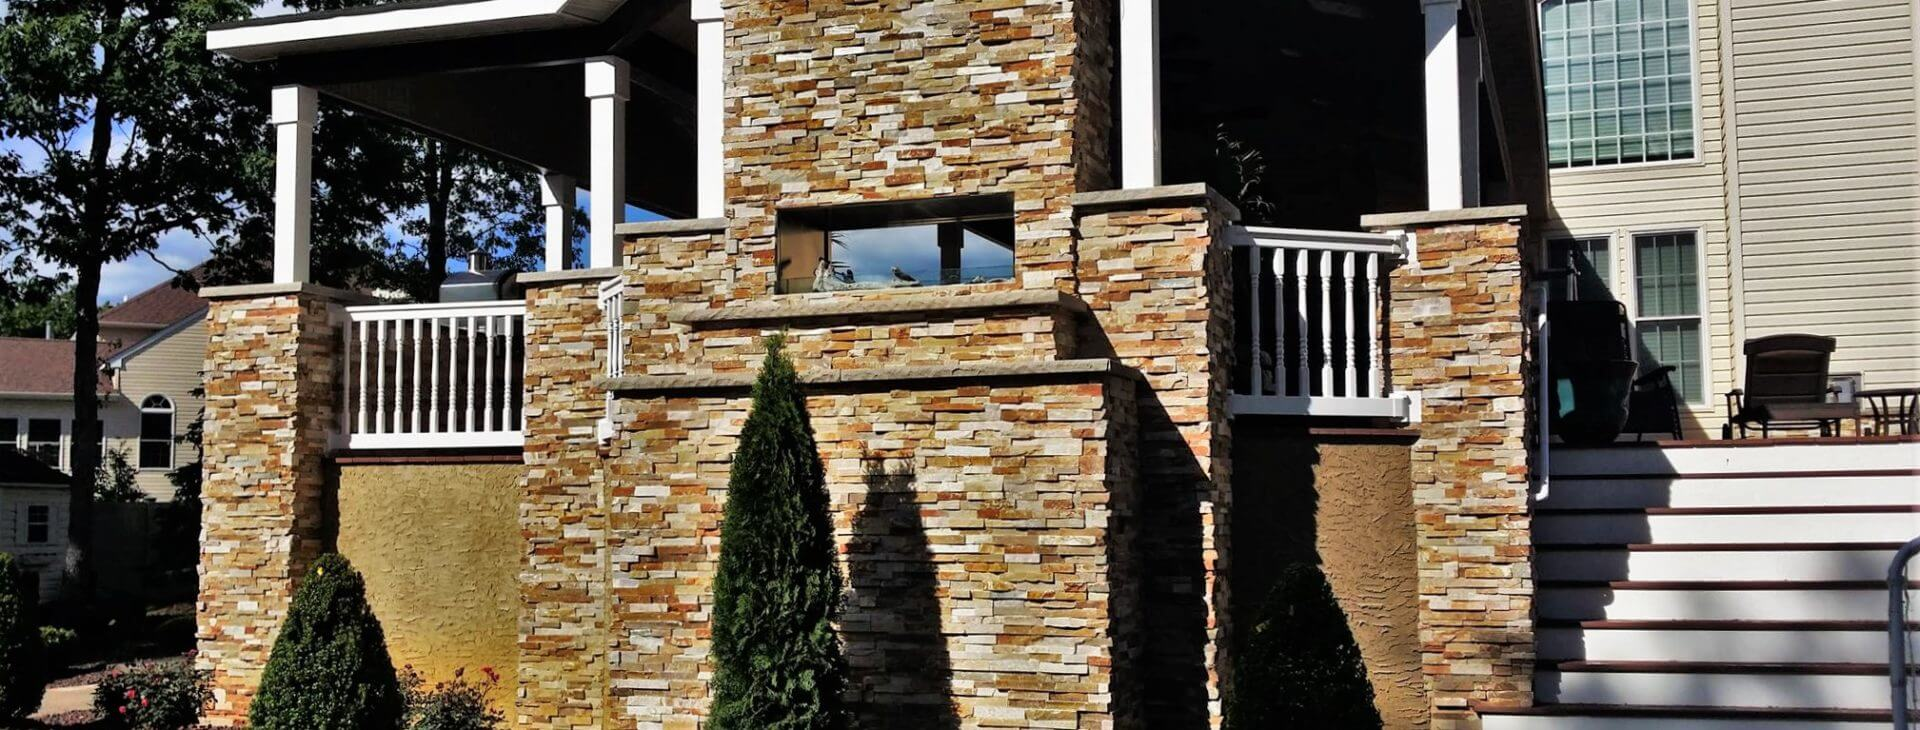 Custom Composite Decks & Stone Veneers